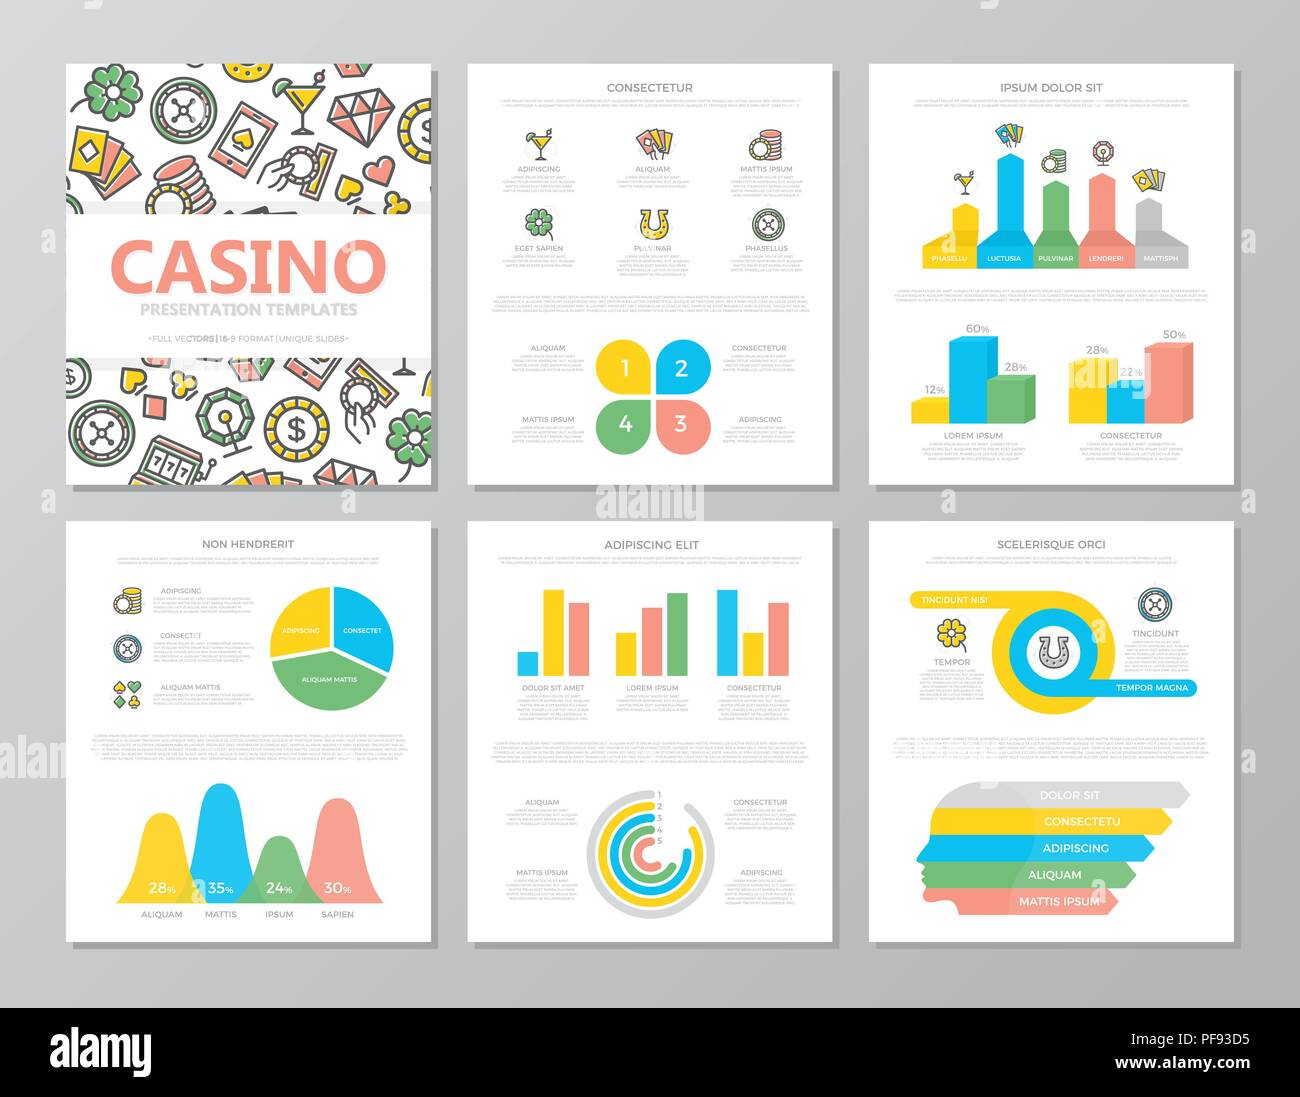 Set of colored gambling and casino elements for multipurpose a4 presentation template slides with graphs and charts. Leaflet, corporate report, marketing, advertising, book cover design. - Stock Image